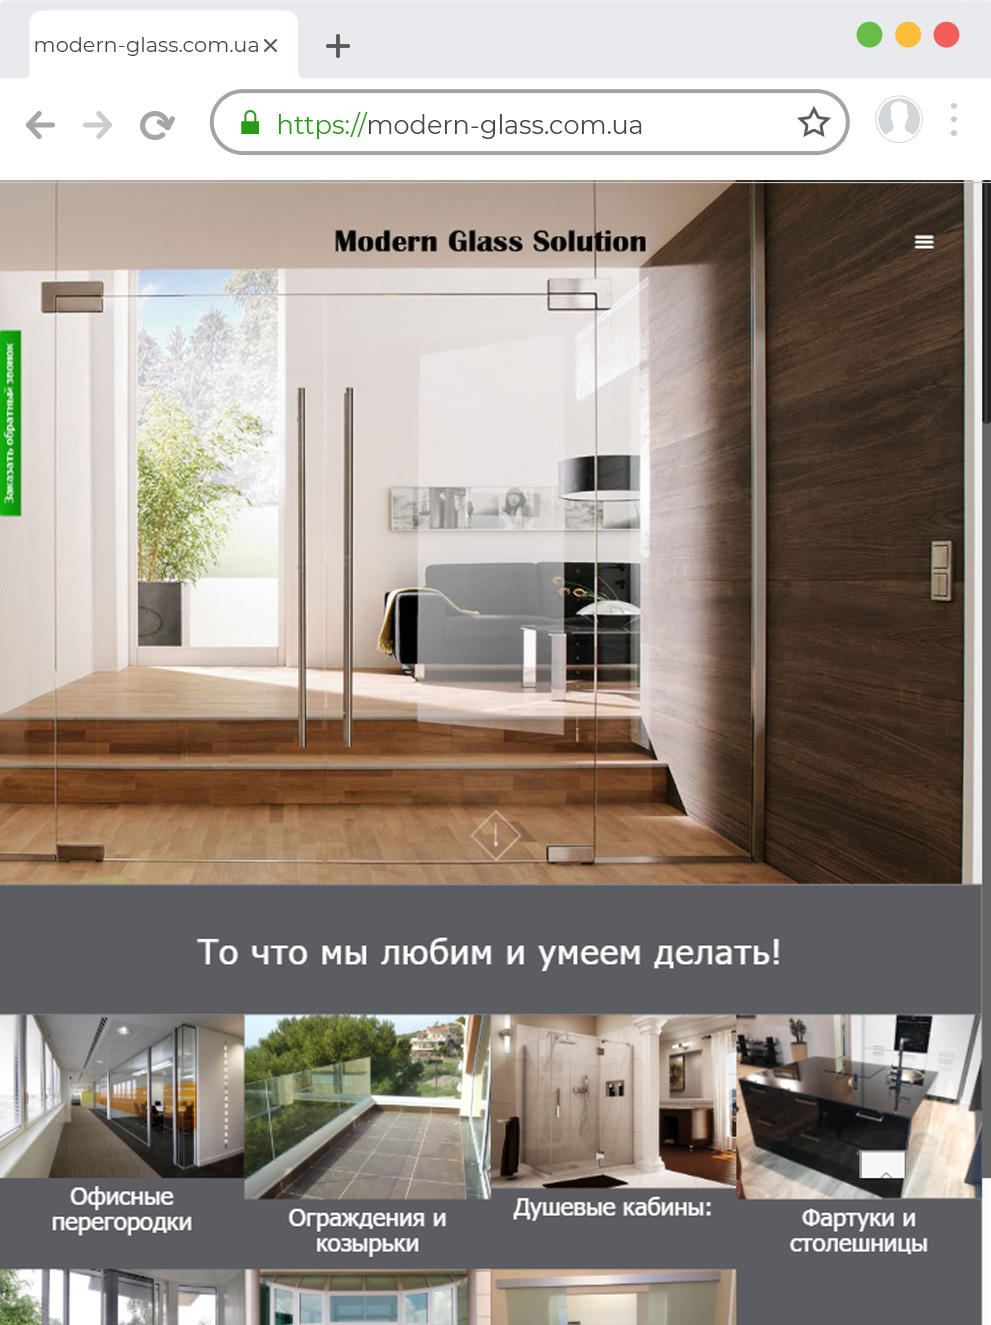 Разработка сайта светопрозрачных конструкций Modern Glass Solution